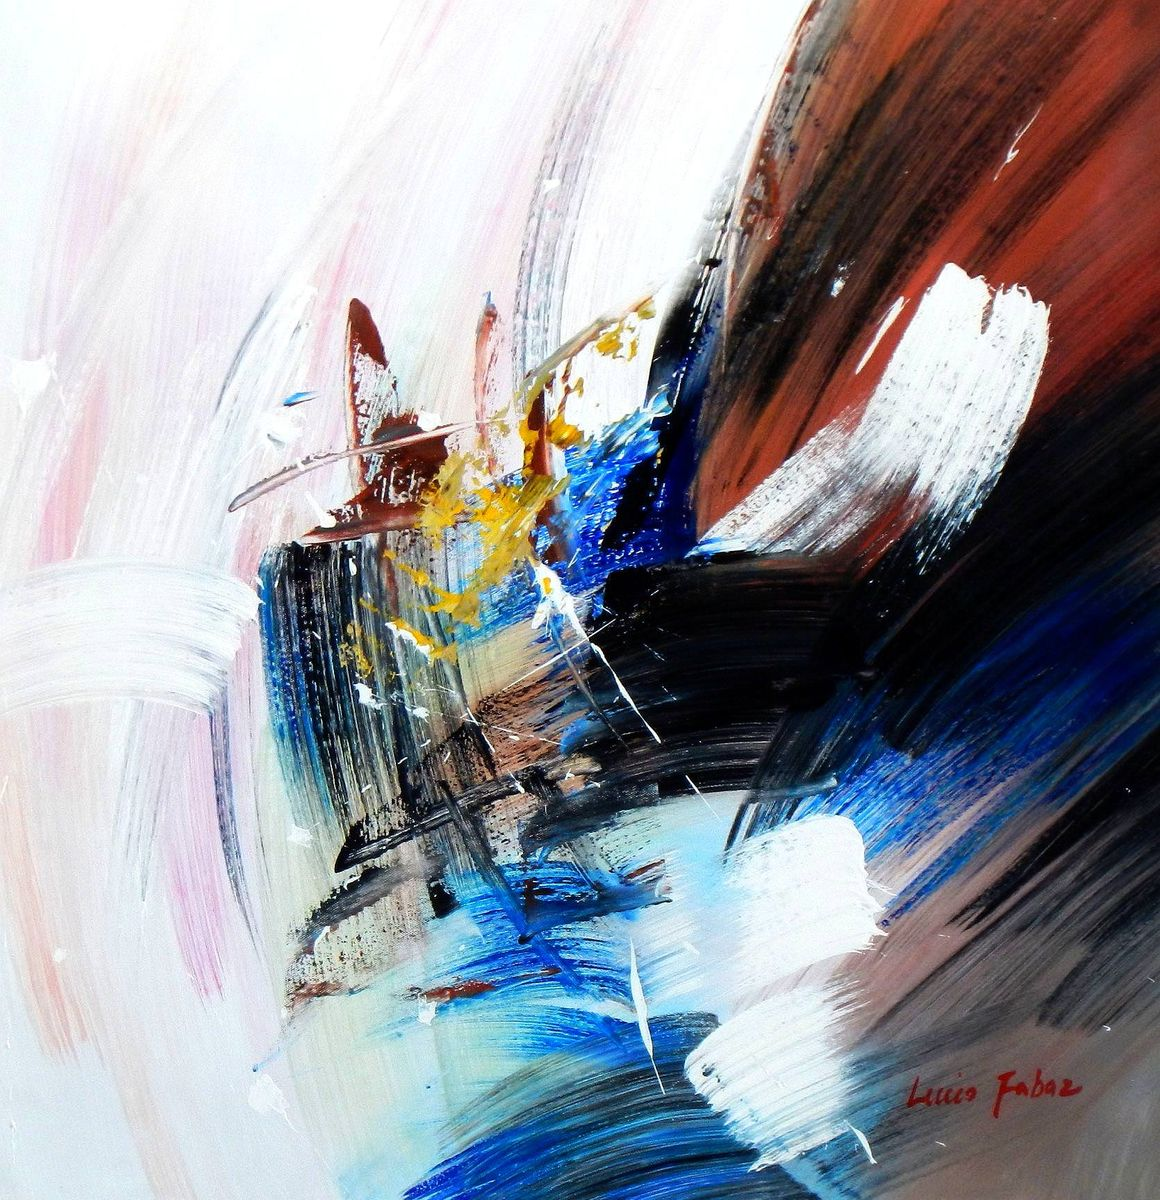 Abstract - New York sailing journey e93977 60x60cm abstraktes Ölgemälde handgemalt